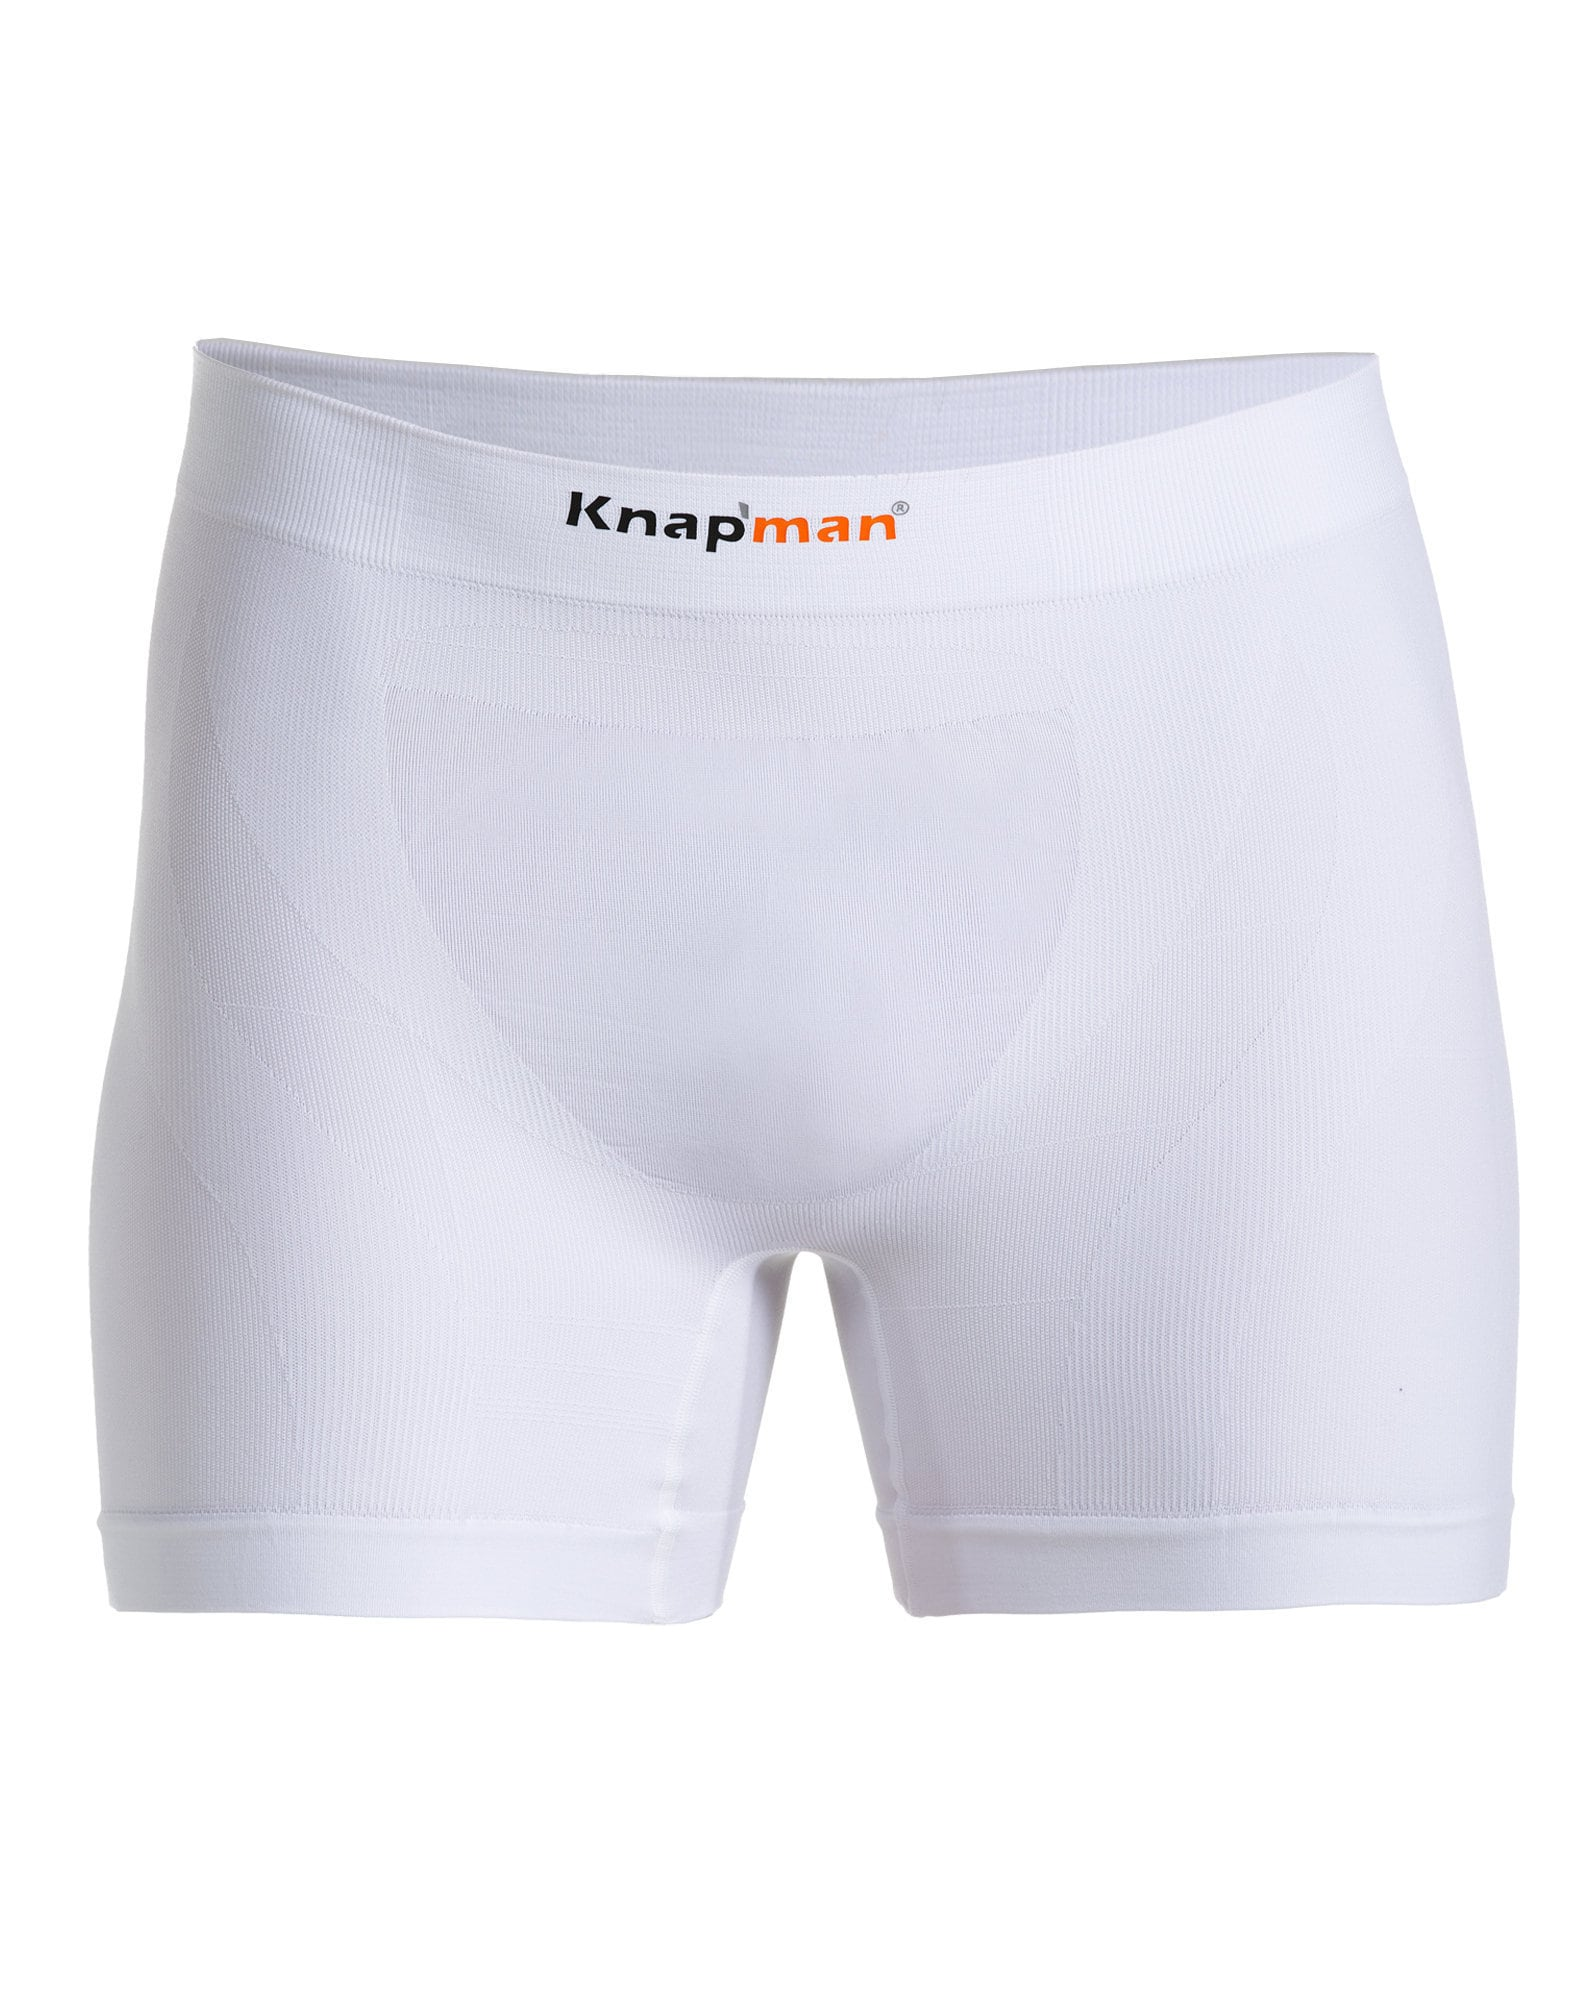 Boxershorts - Weiß - Two Pack